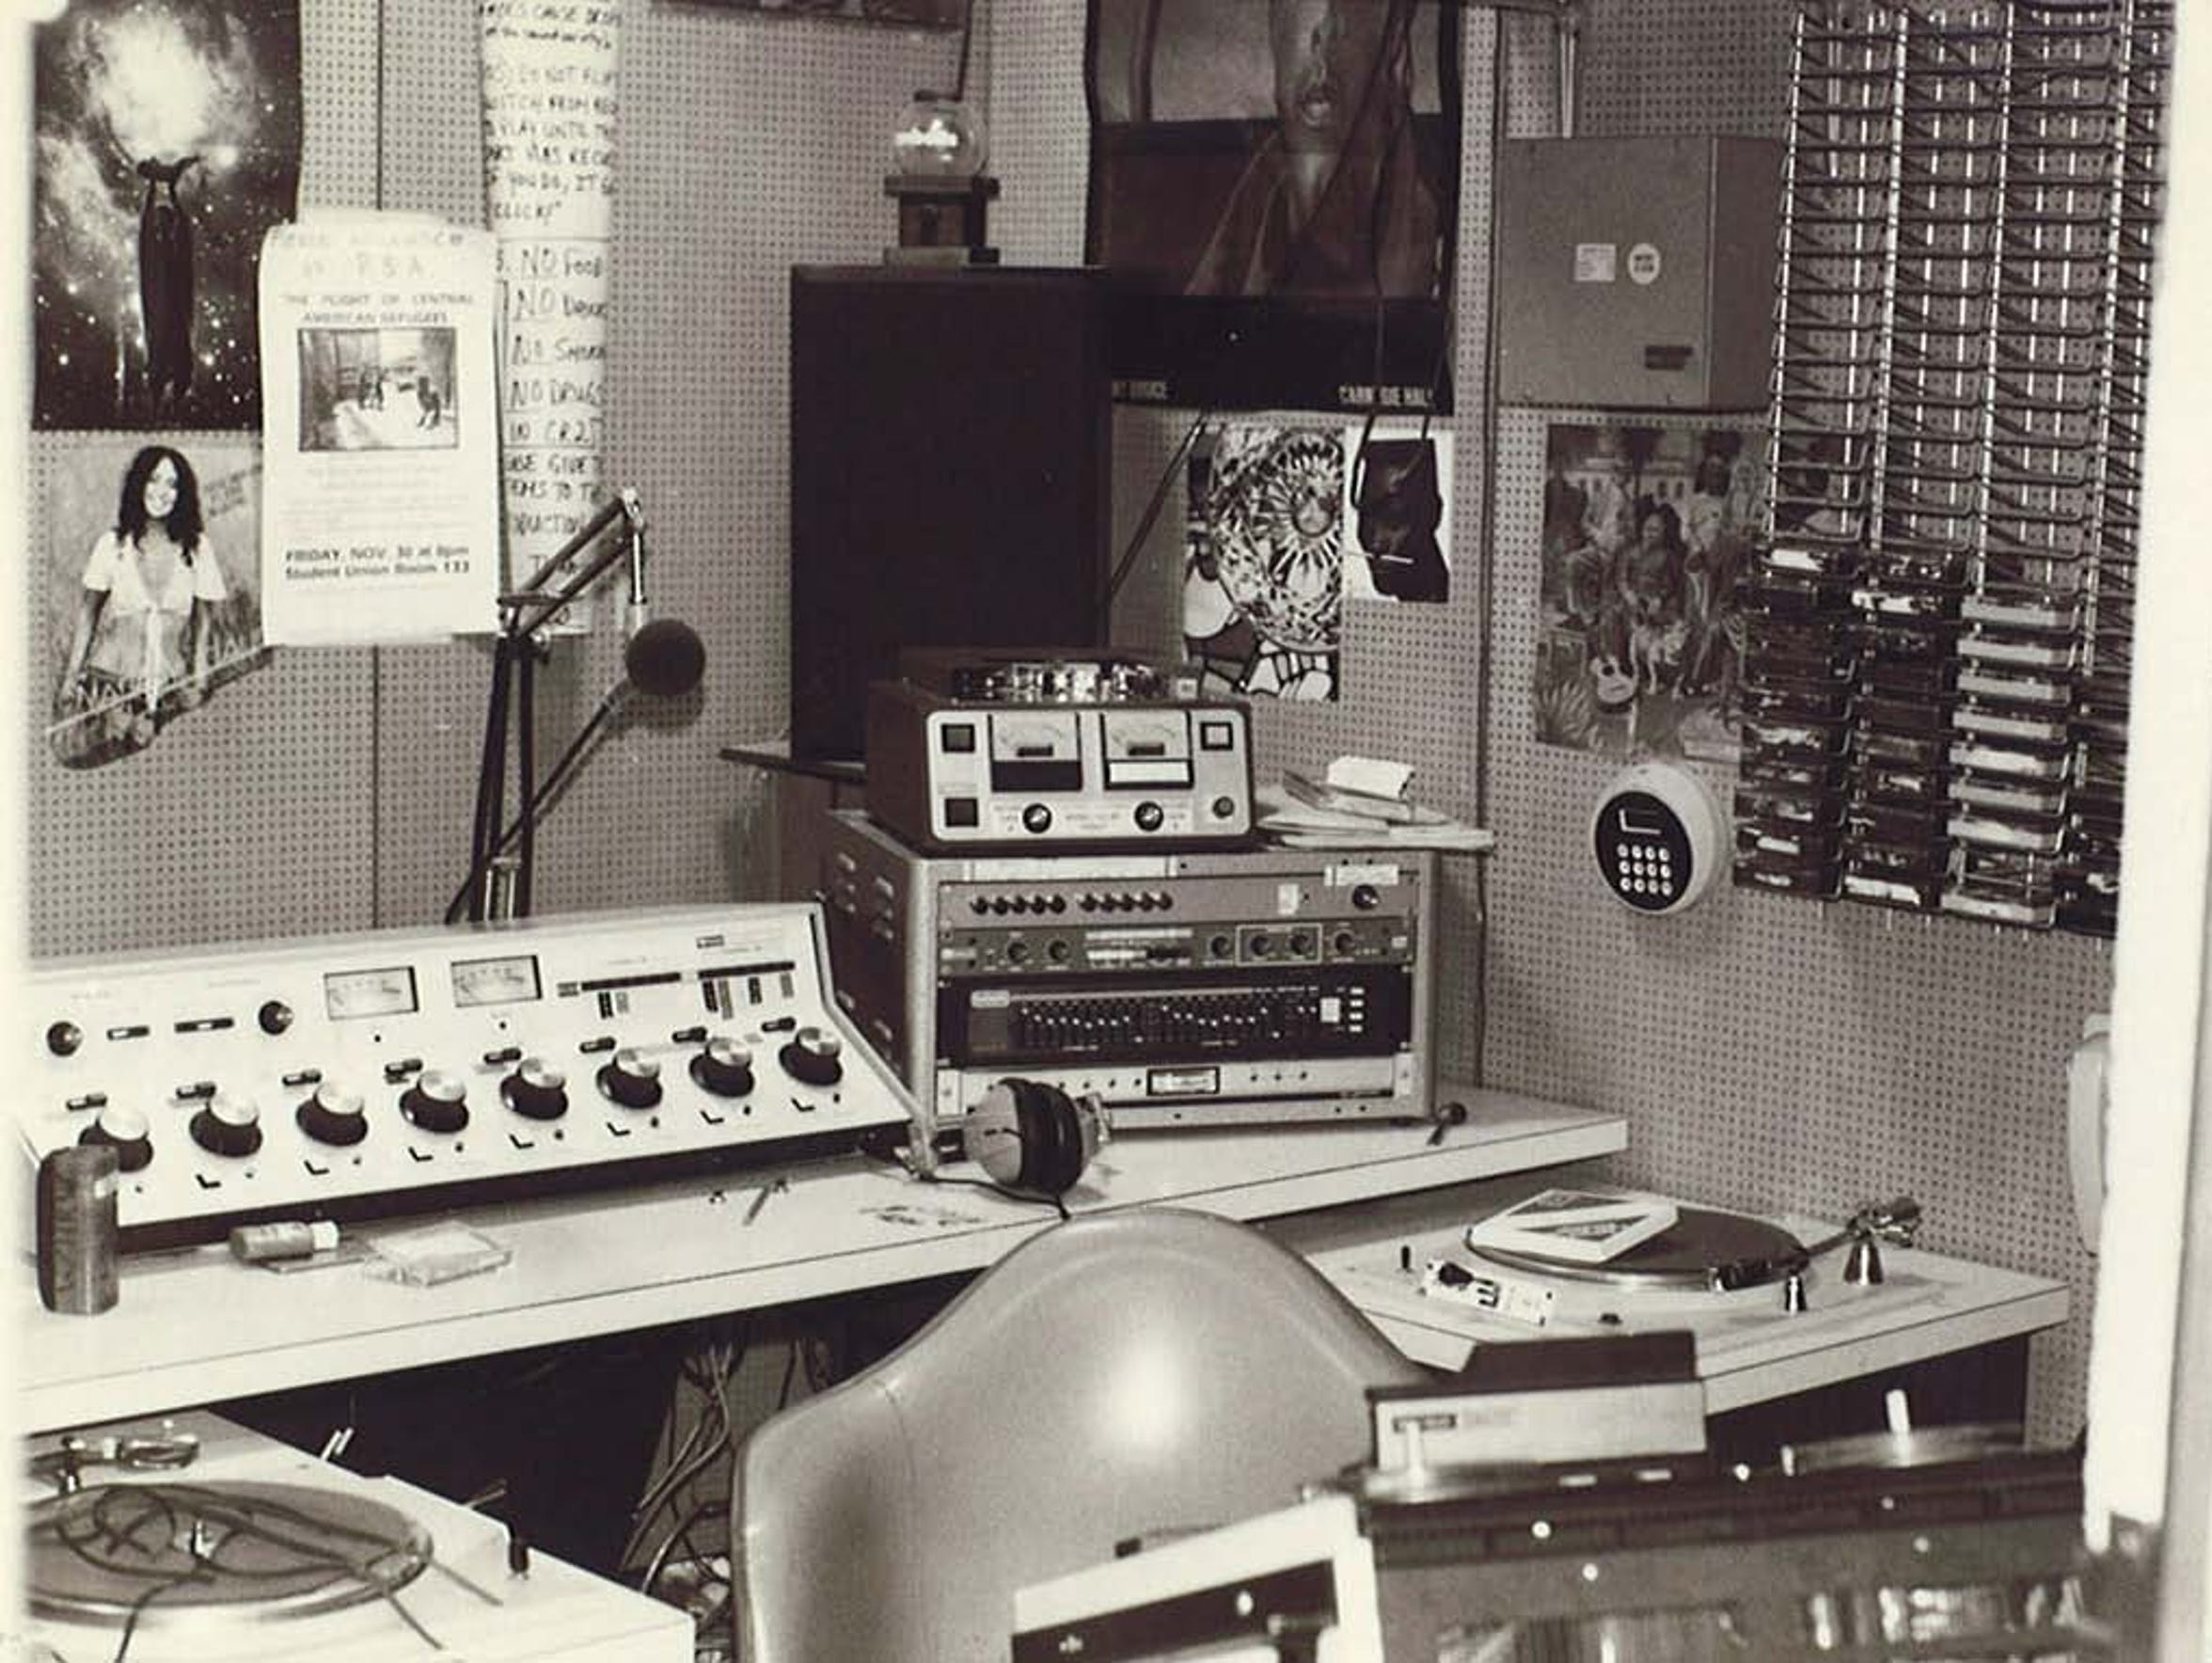 The control room at WHRW Binghamton in the early 1980s